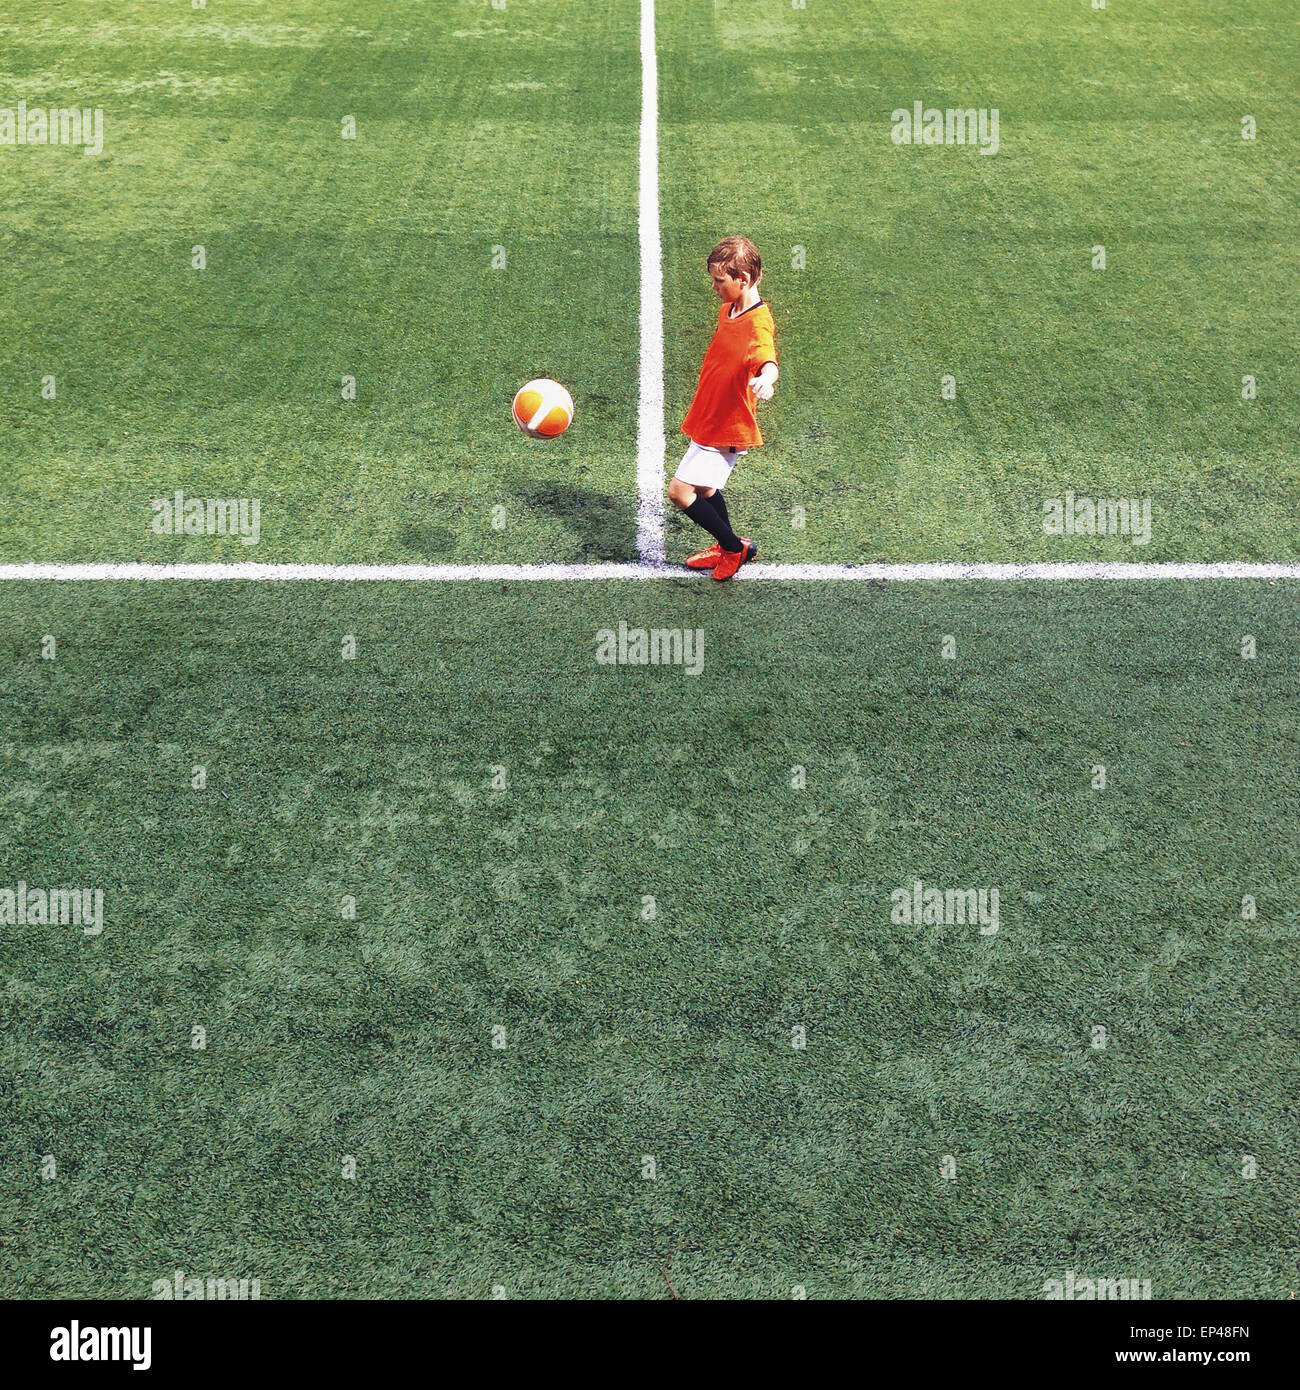 Side view of a boy on a football pitch - Stock Image